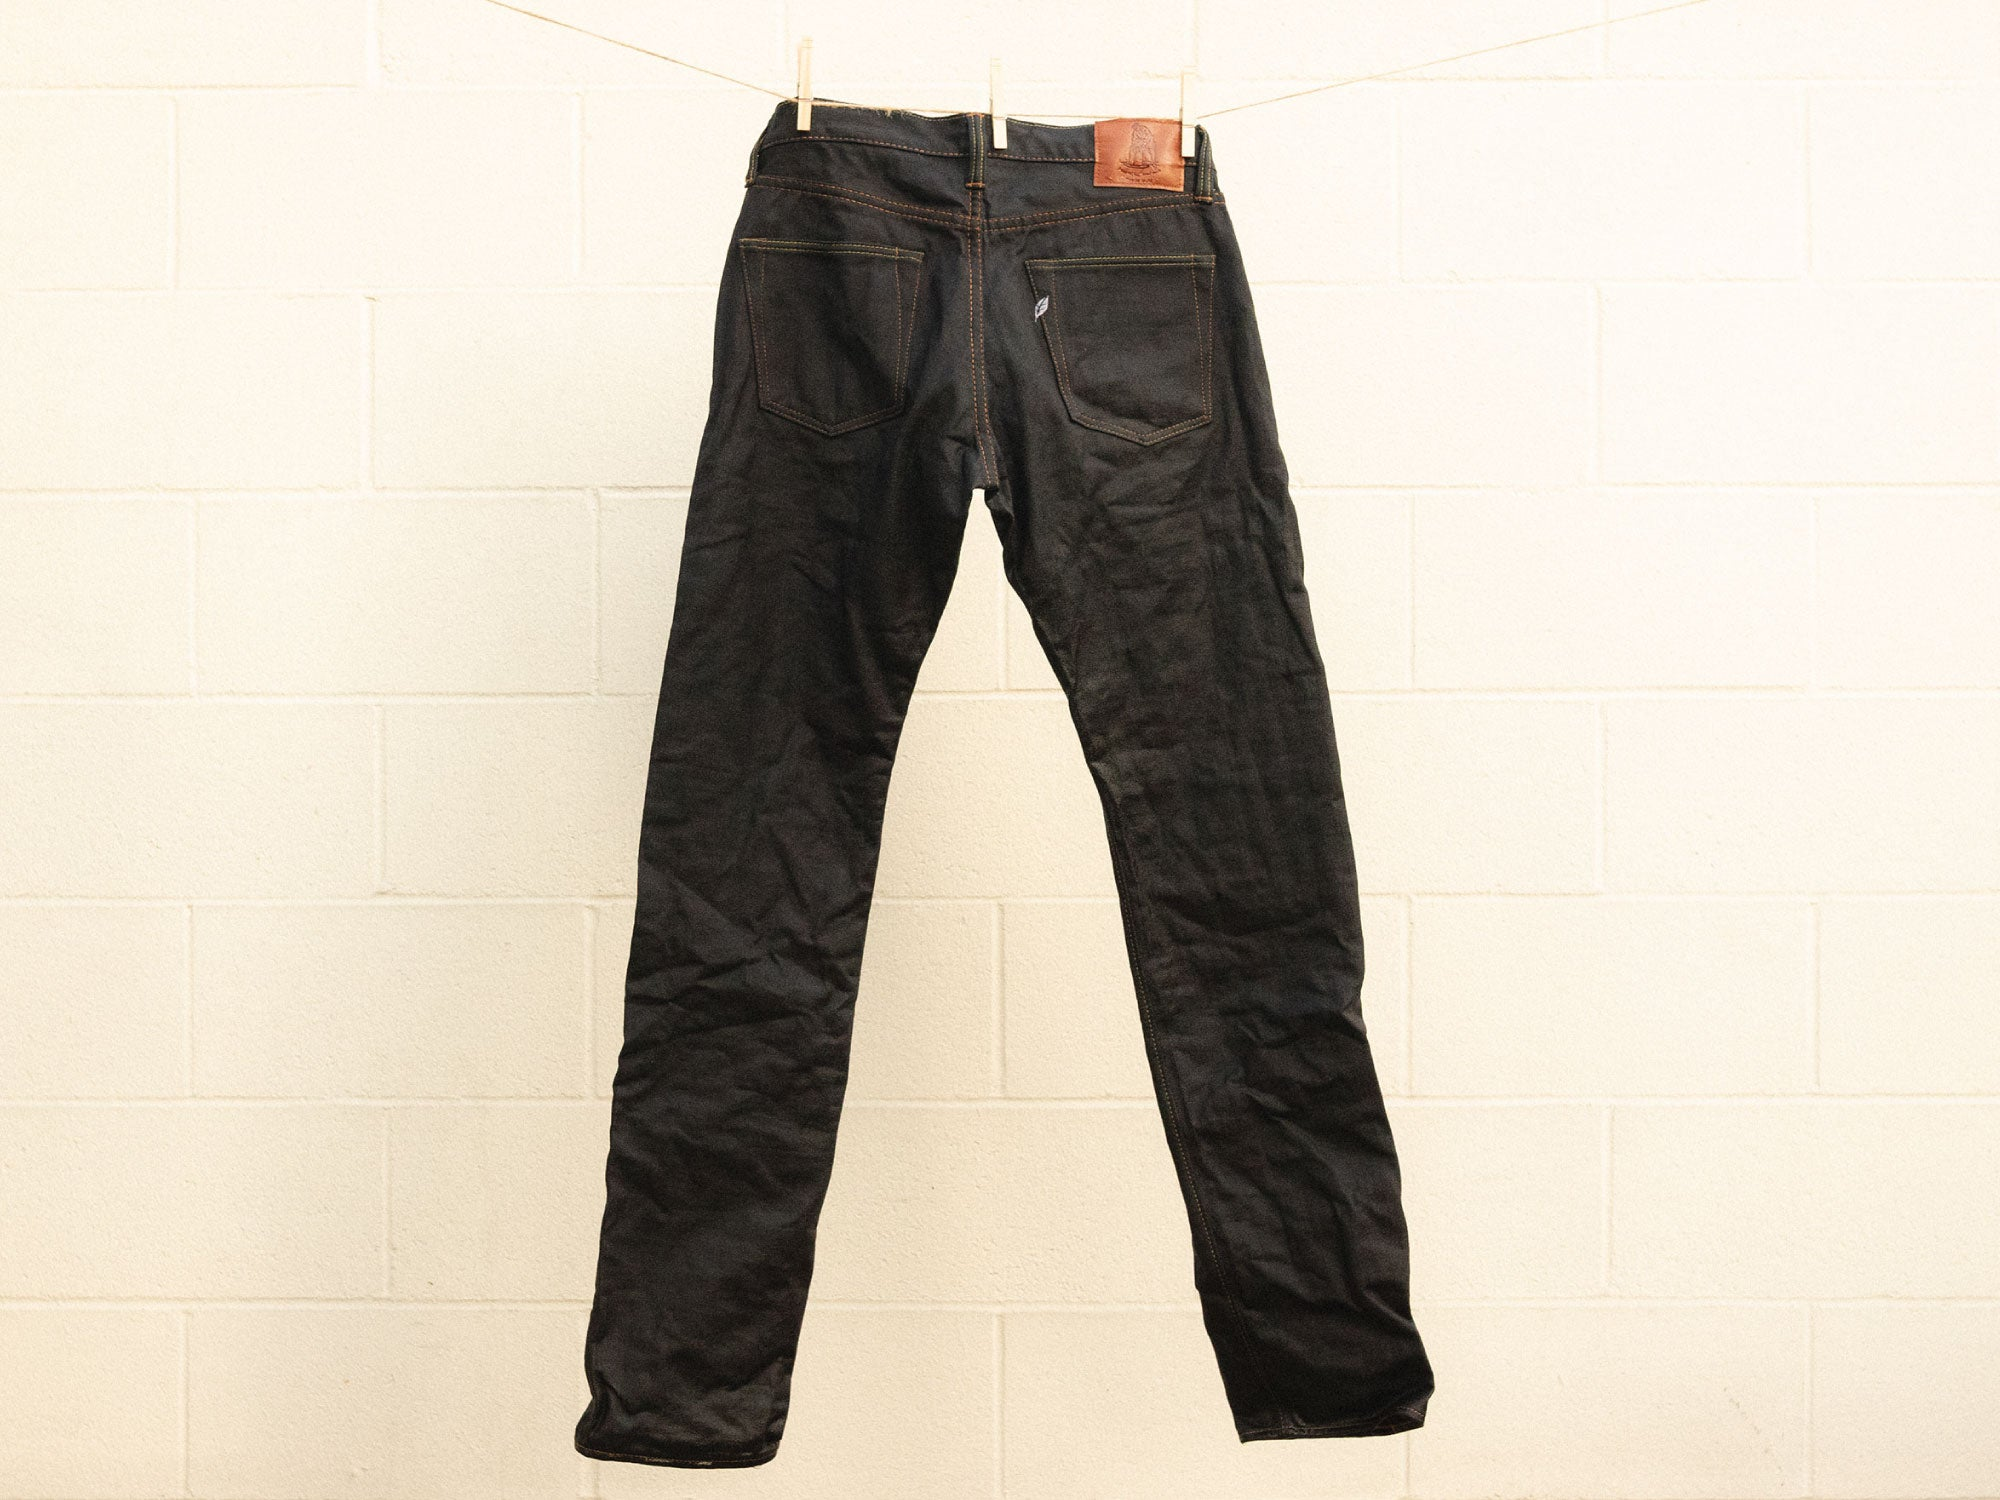 wet selvedge denim jeans hung up pure blue japan